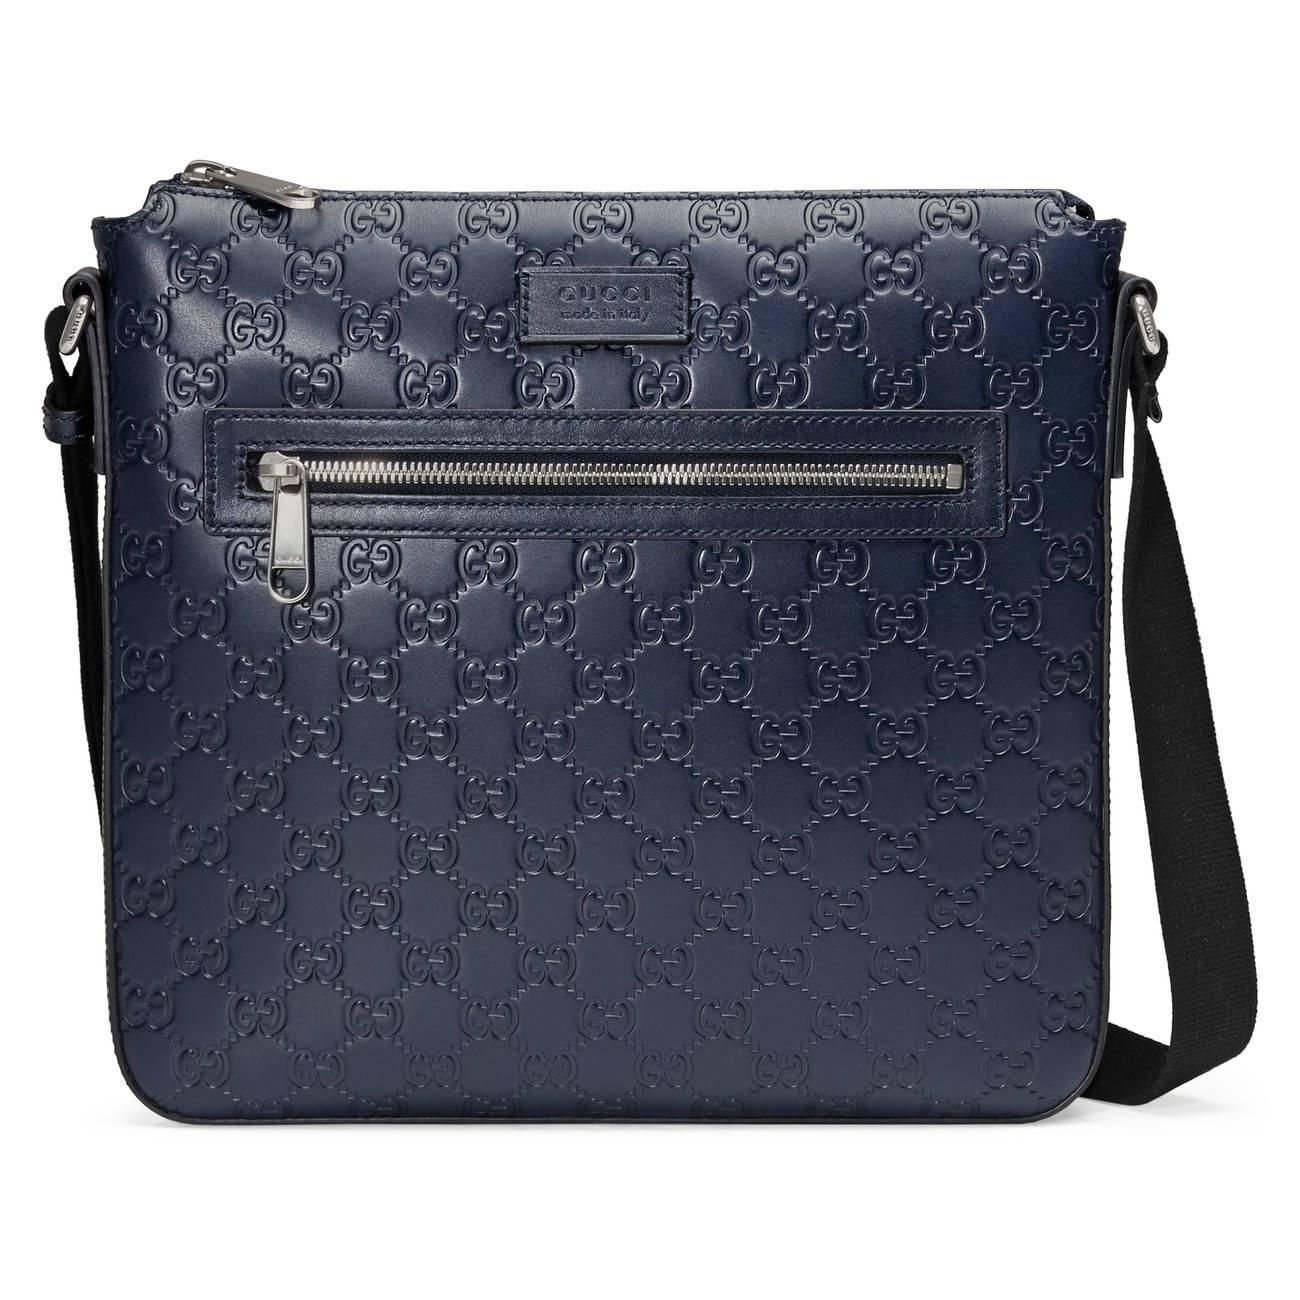 06ee6cd8118 Gucci Signature Leather Messenger Blue in Blue for Men - Save ...